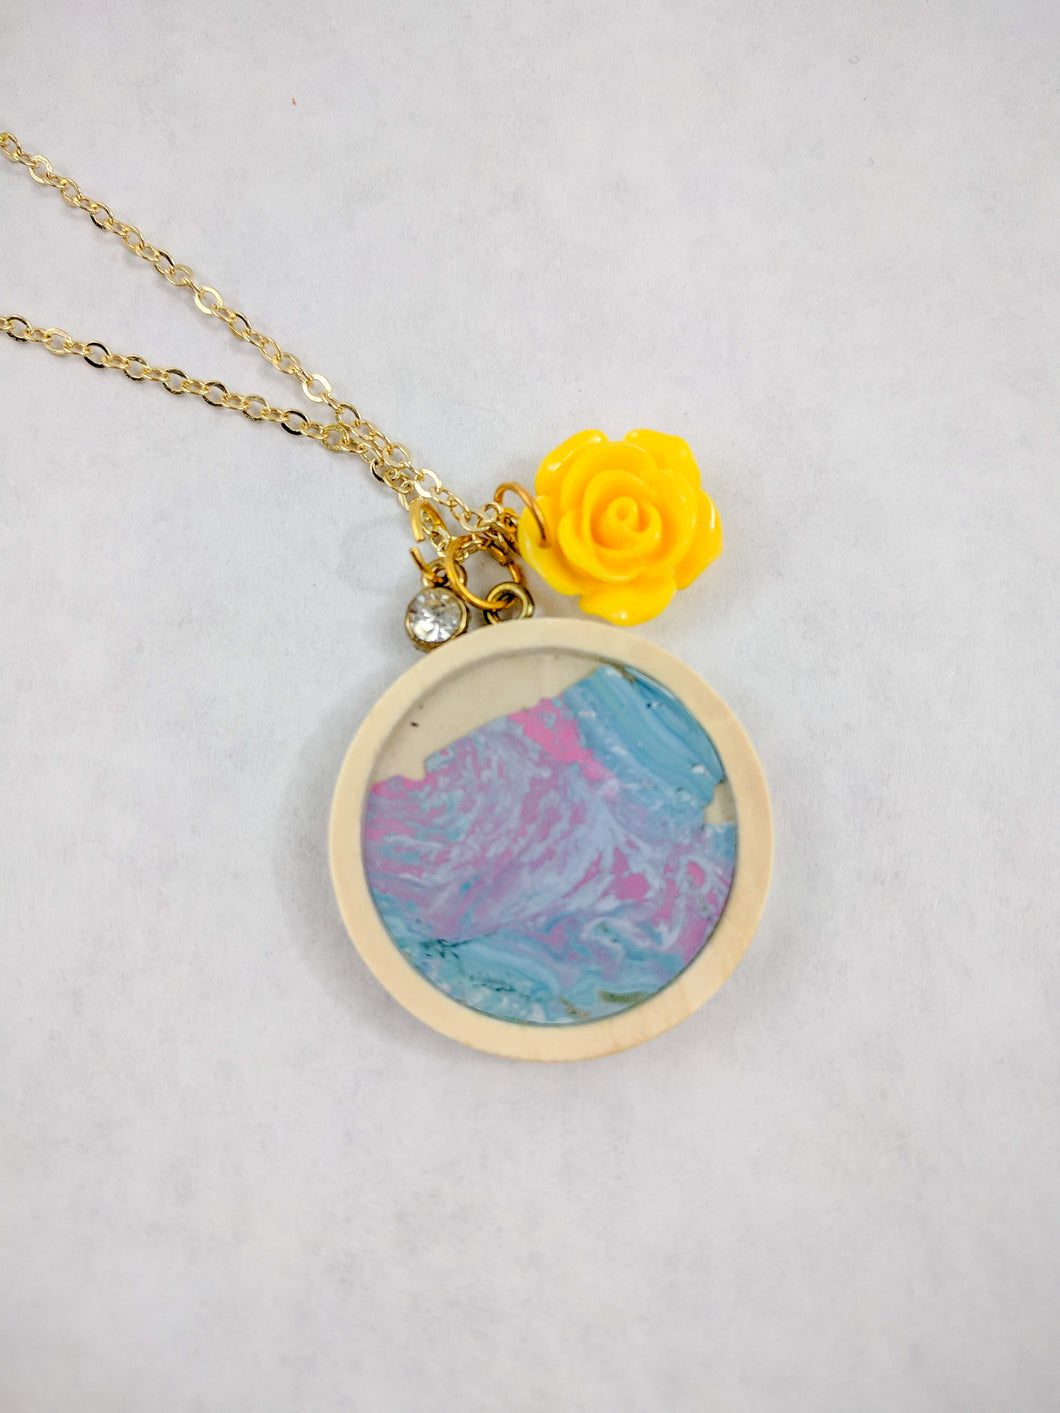 Yellow Rose Charm and Custom Artwork Pendant Necklace, Custom Gift